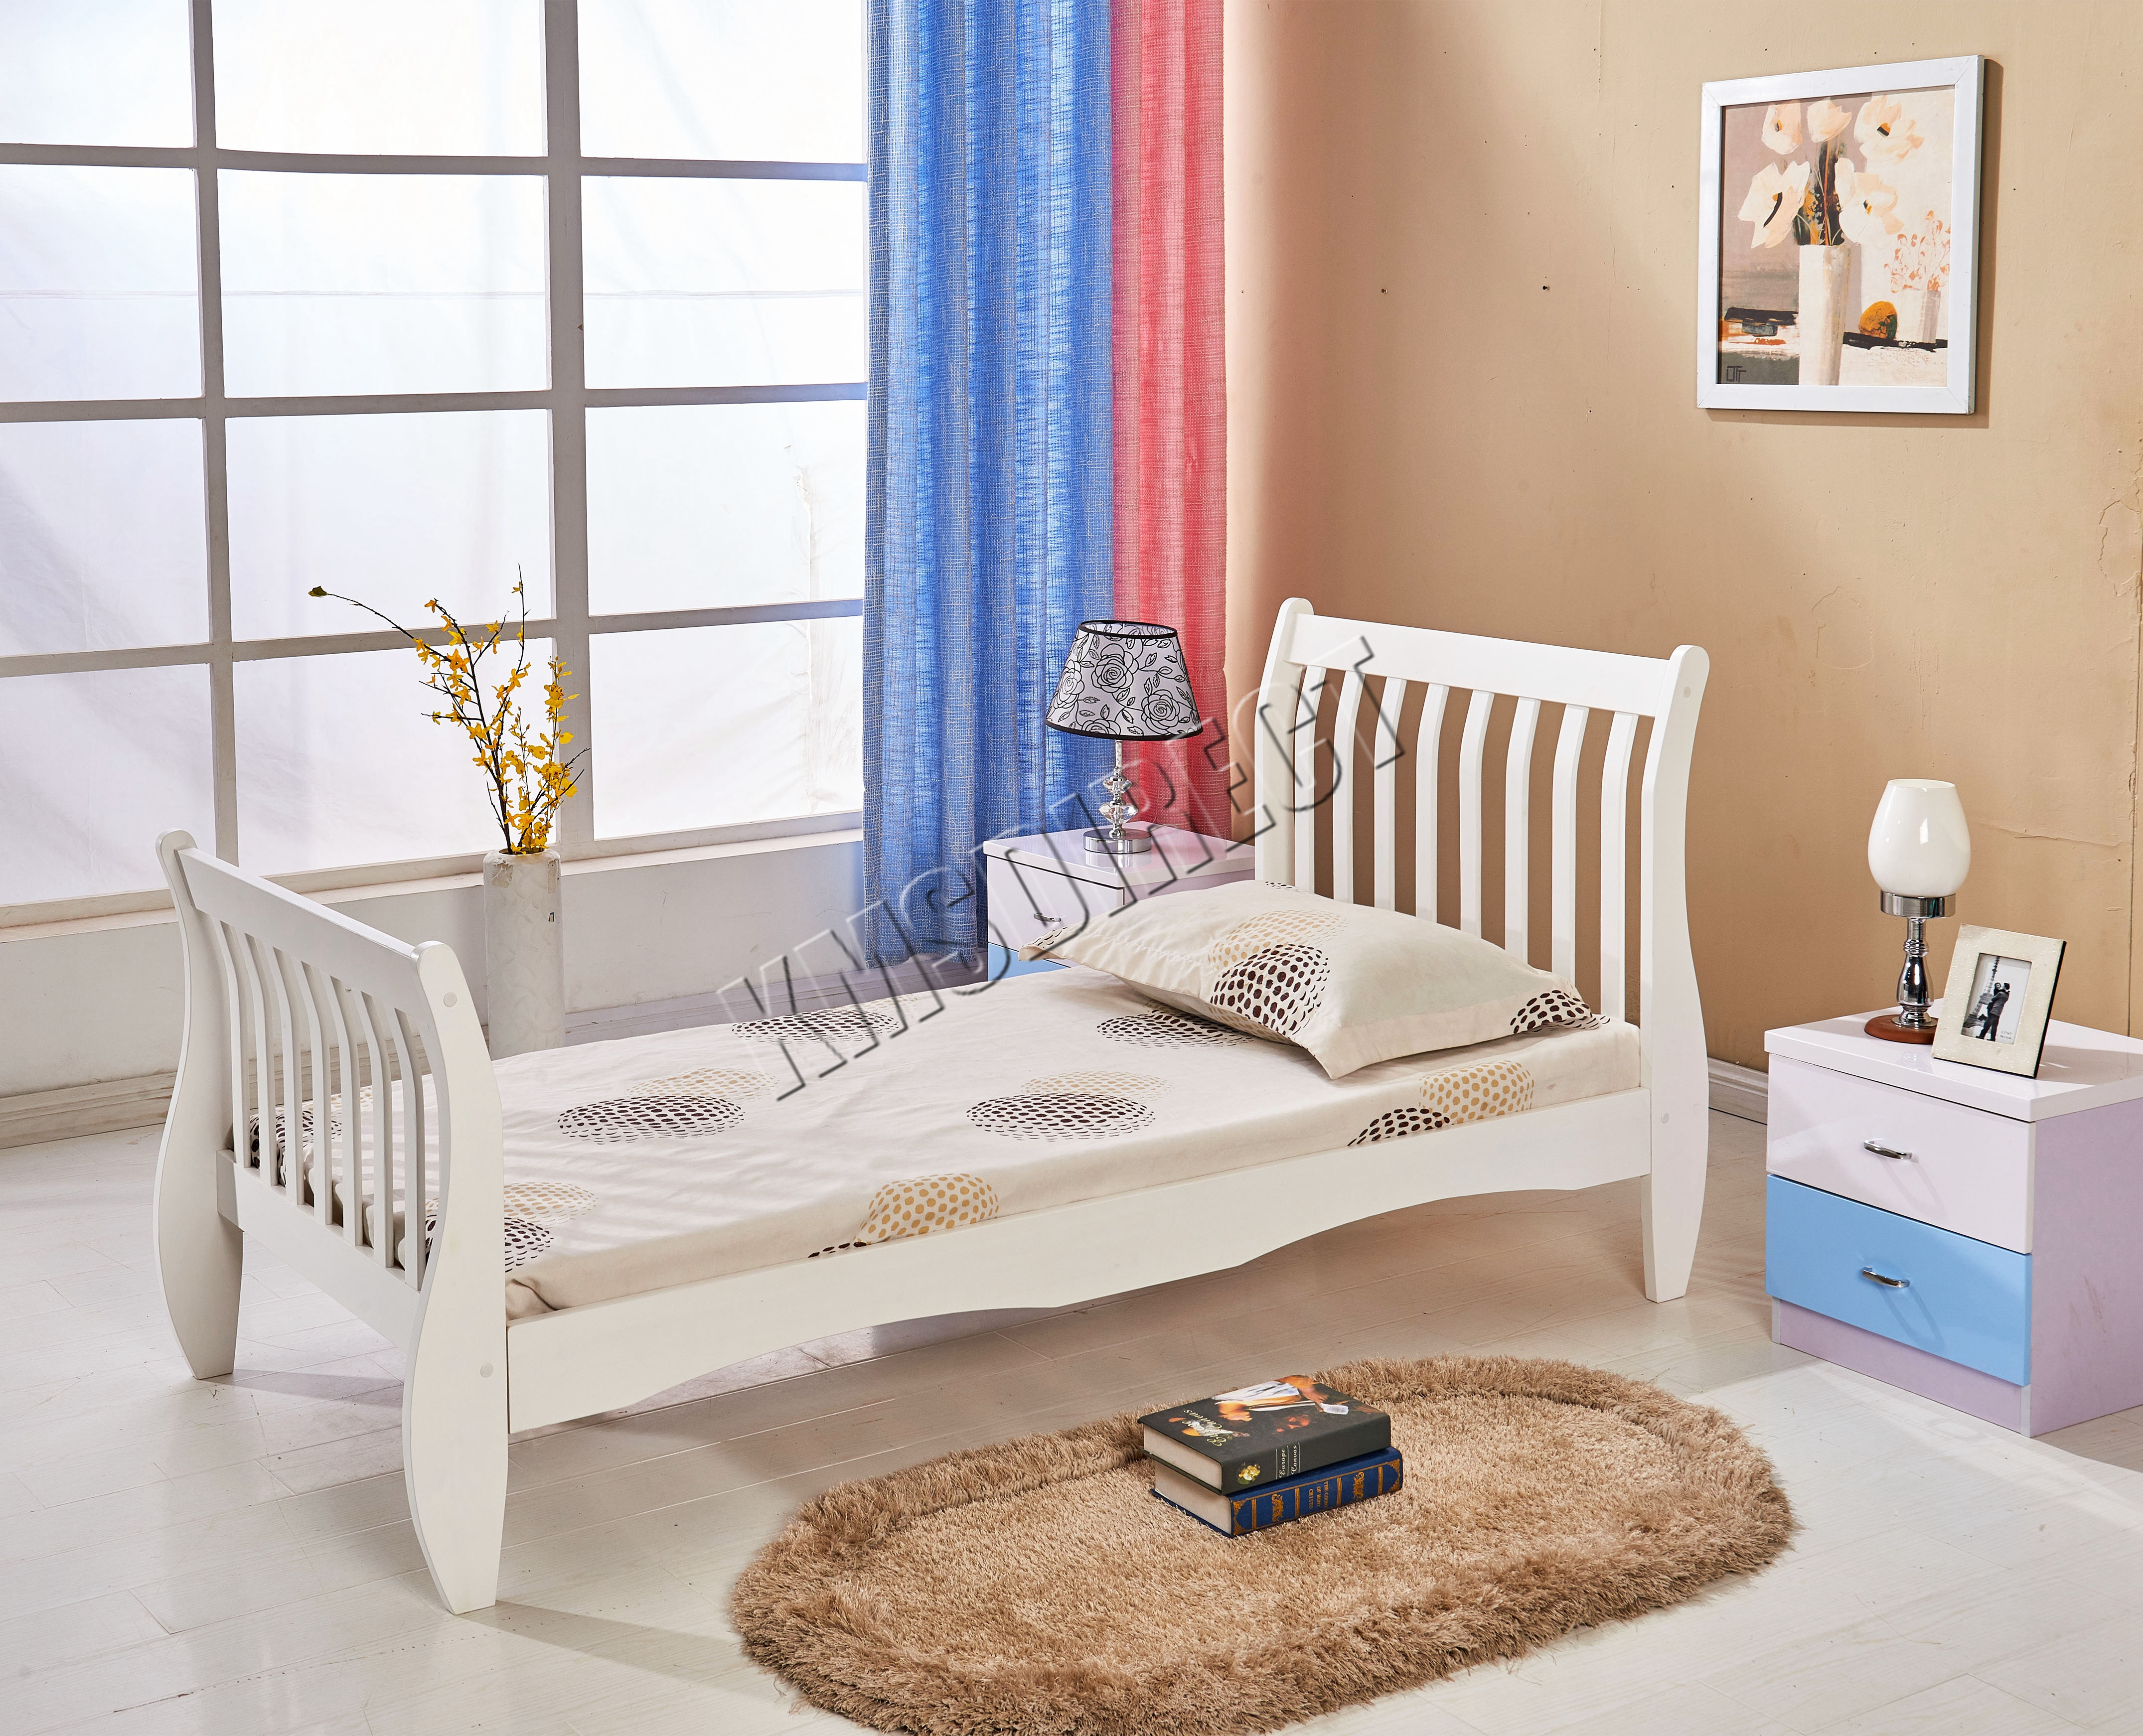 house sleigh doherty frame designs bed variety queen